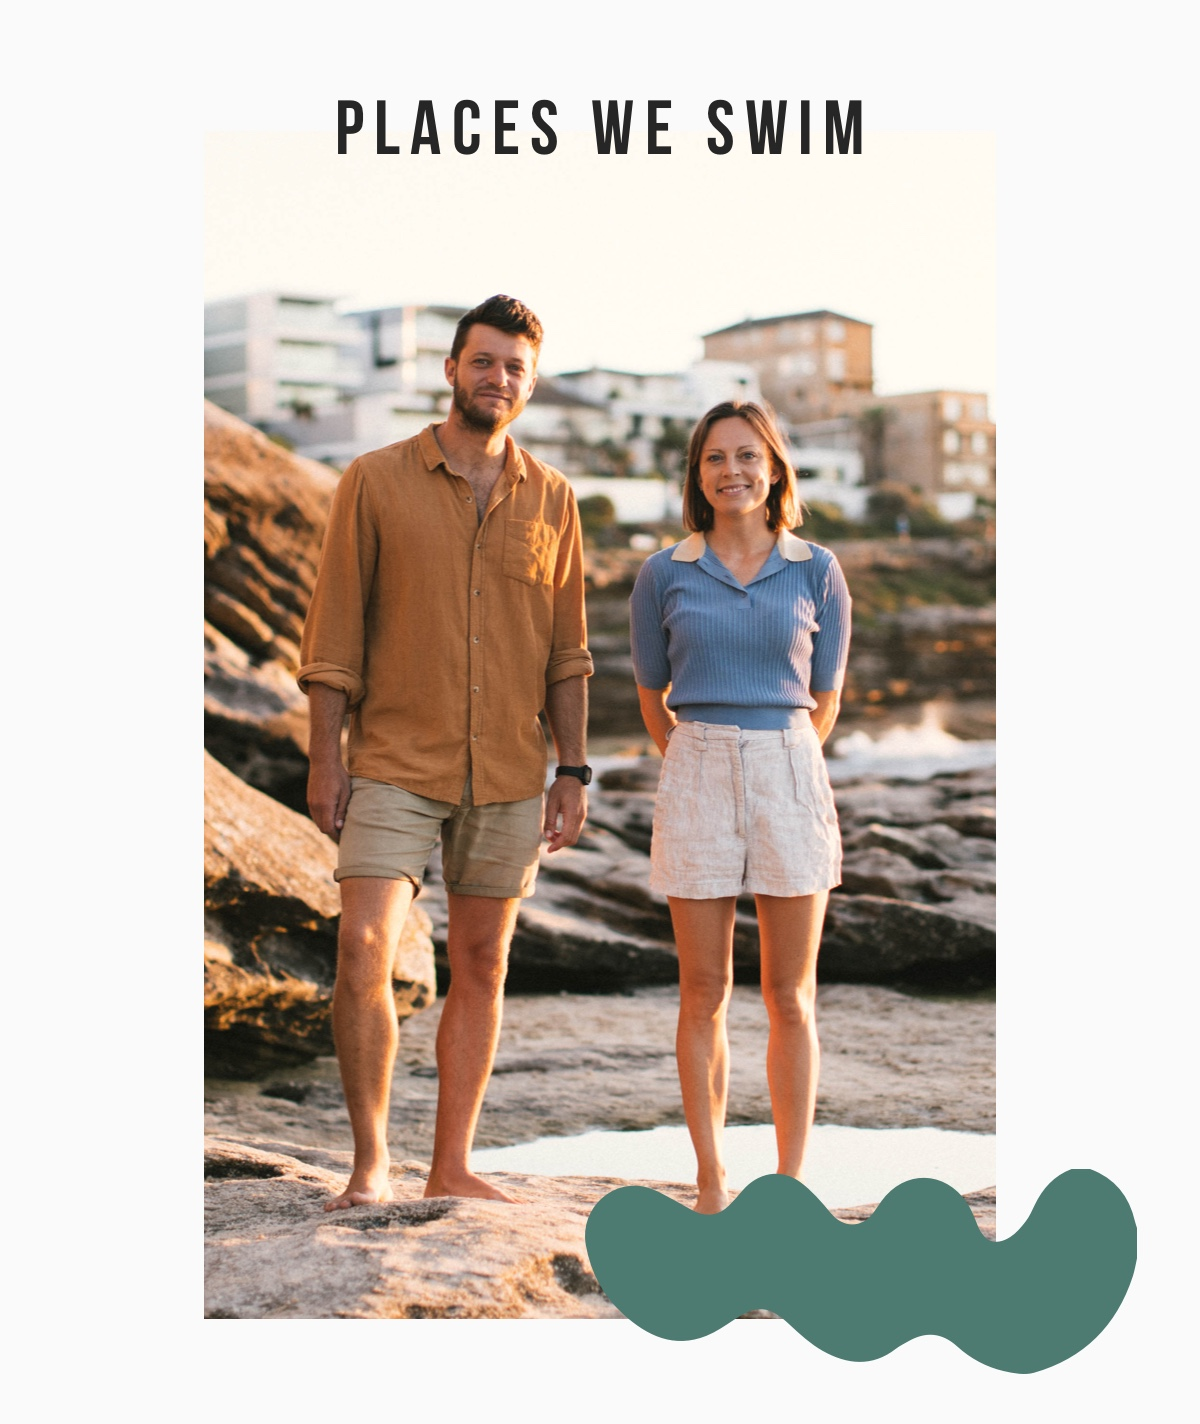 placesweswim-testimonial-ethical-design-agency-bondi-byron-bay-sydney-melbourne-sustainable-travel.jpg